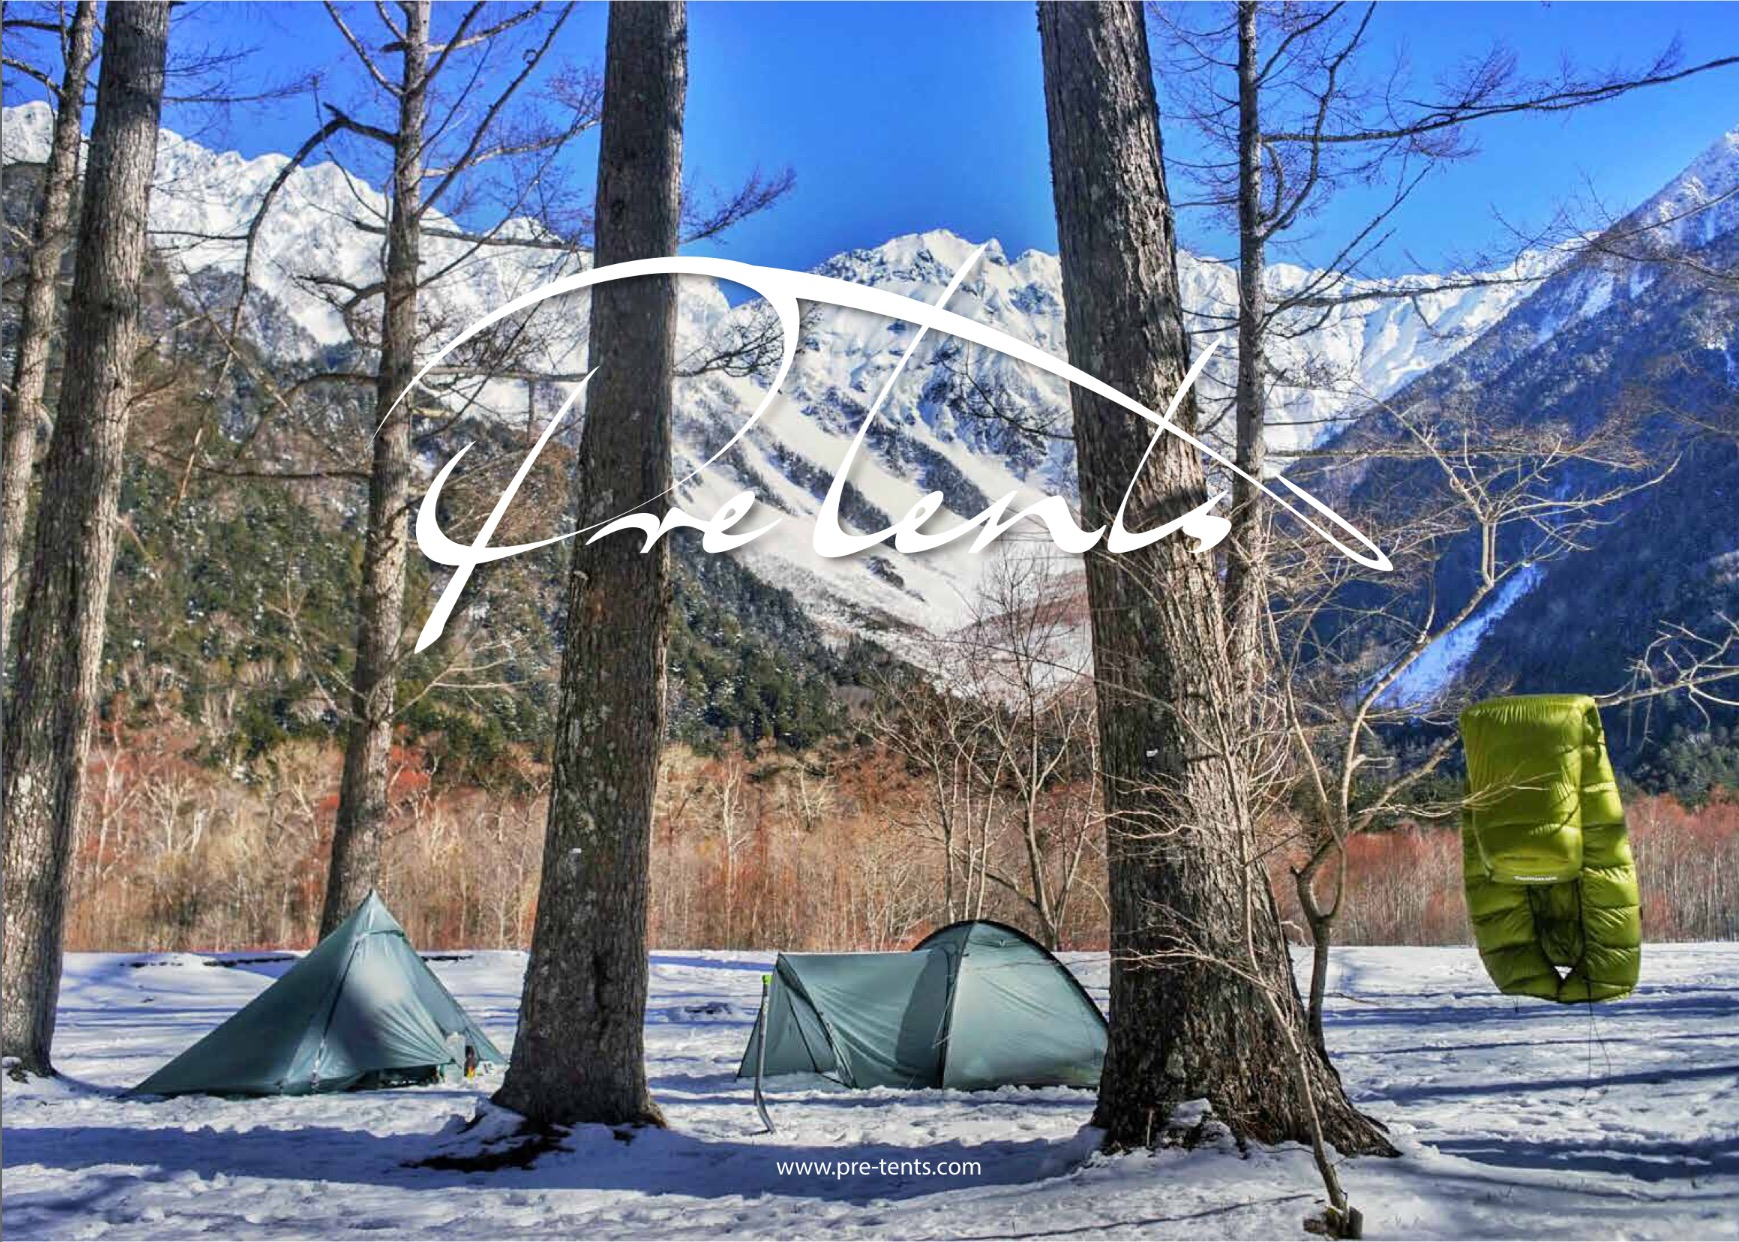 Pre Tents 2019 Product Catalog